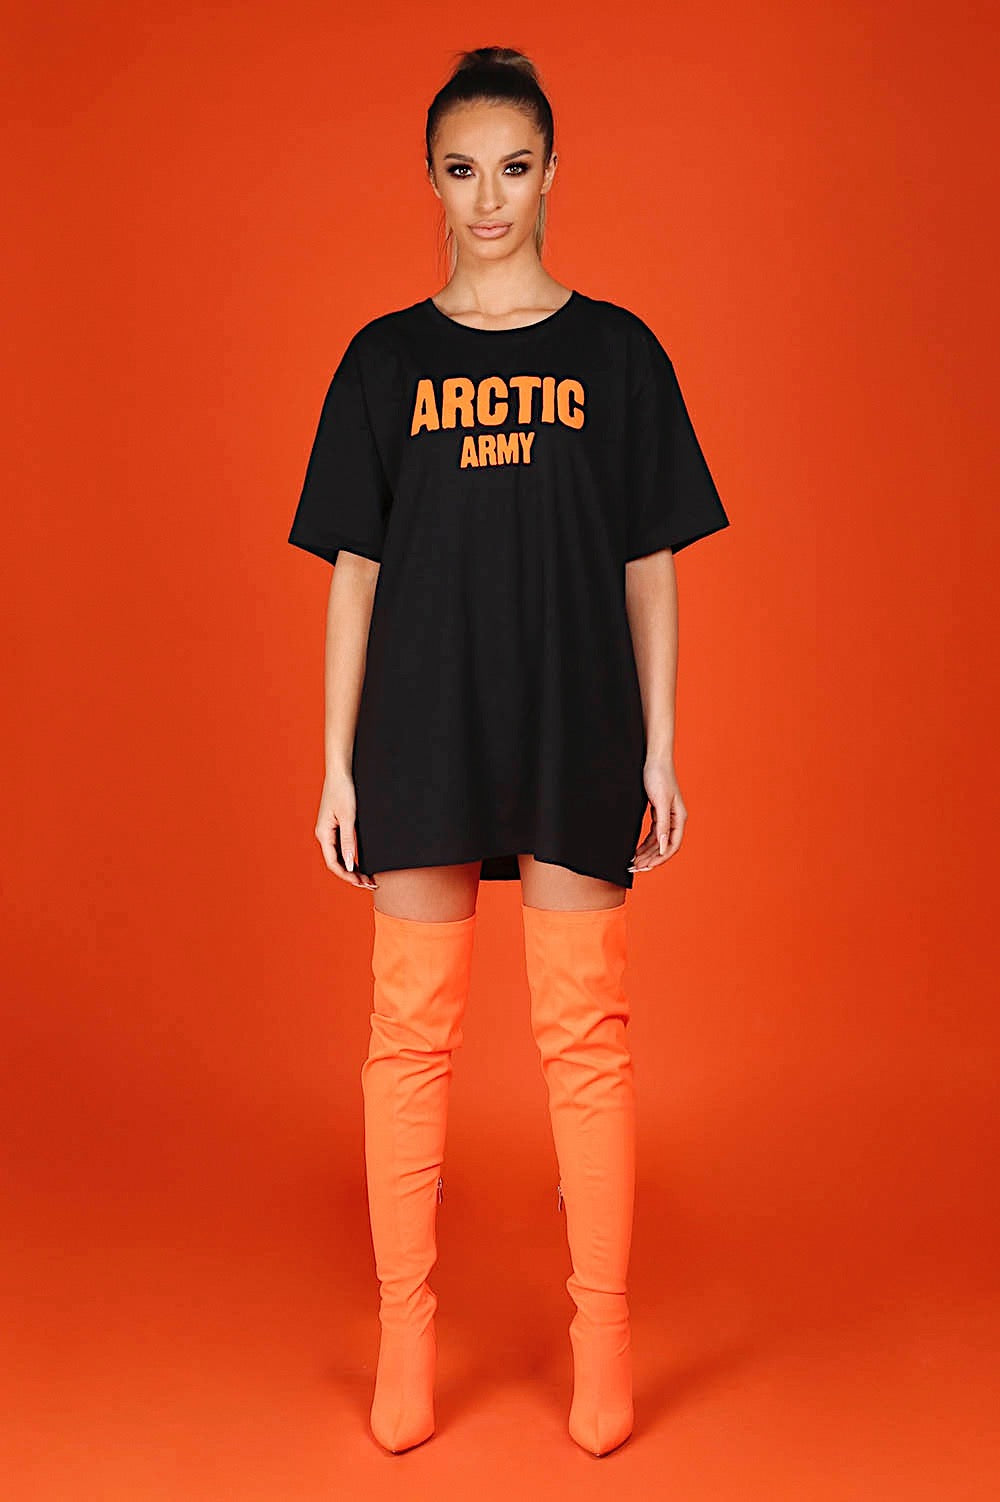 ARCTIC T SHIRT - BLACK/ ORANGE LADIES